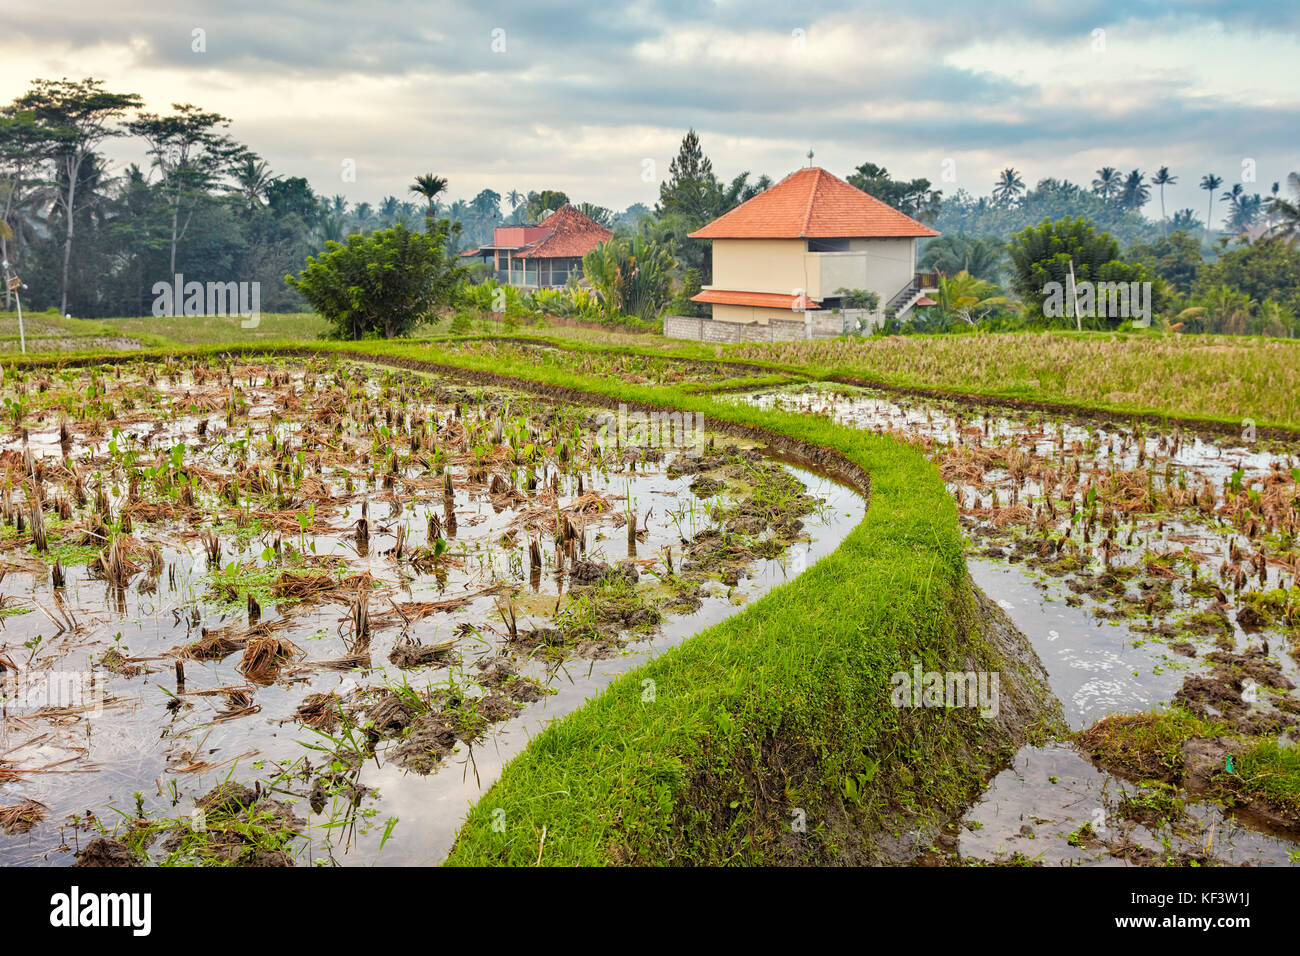 Rice paddy along the Campuhan Ridge Walk. Ubud, Bali, Indonesia. - Stock Image